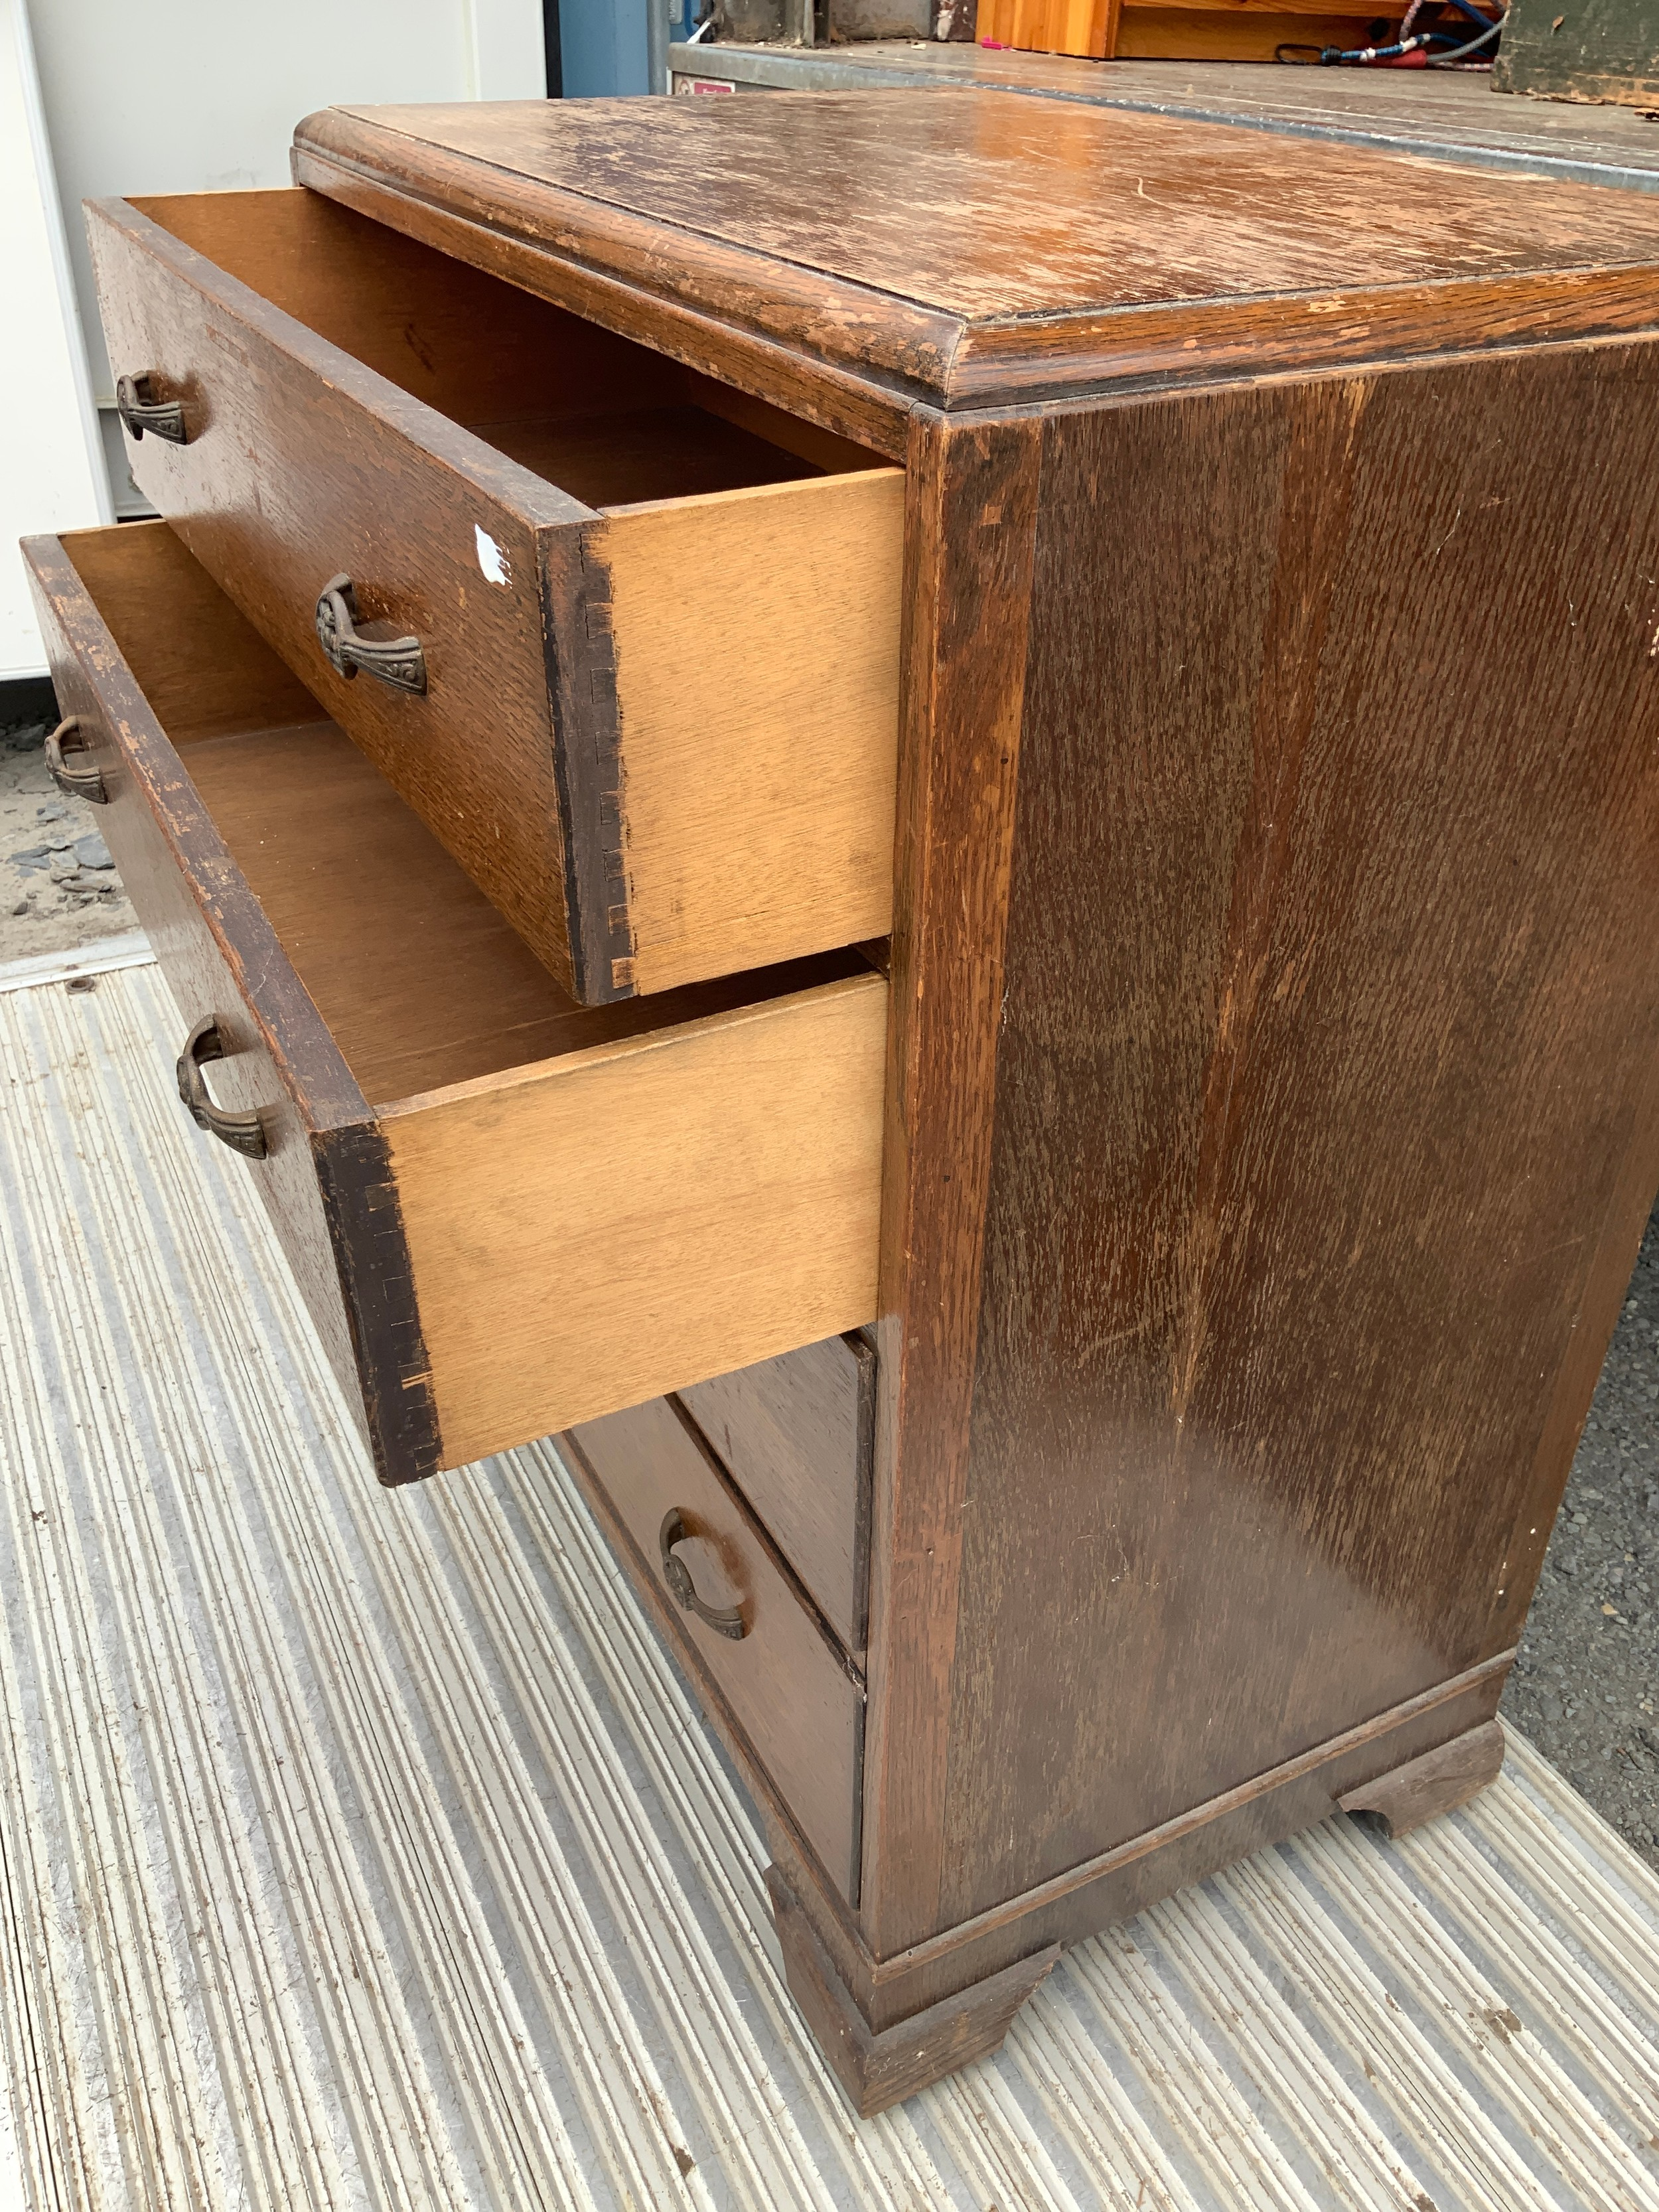 Oak Chest of Drawers - Image 2 of 2